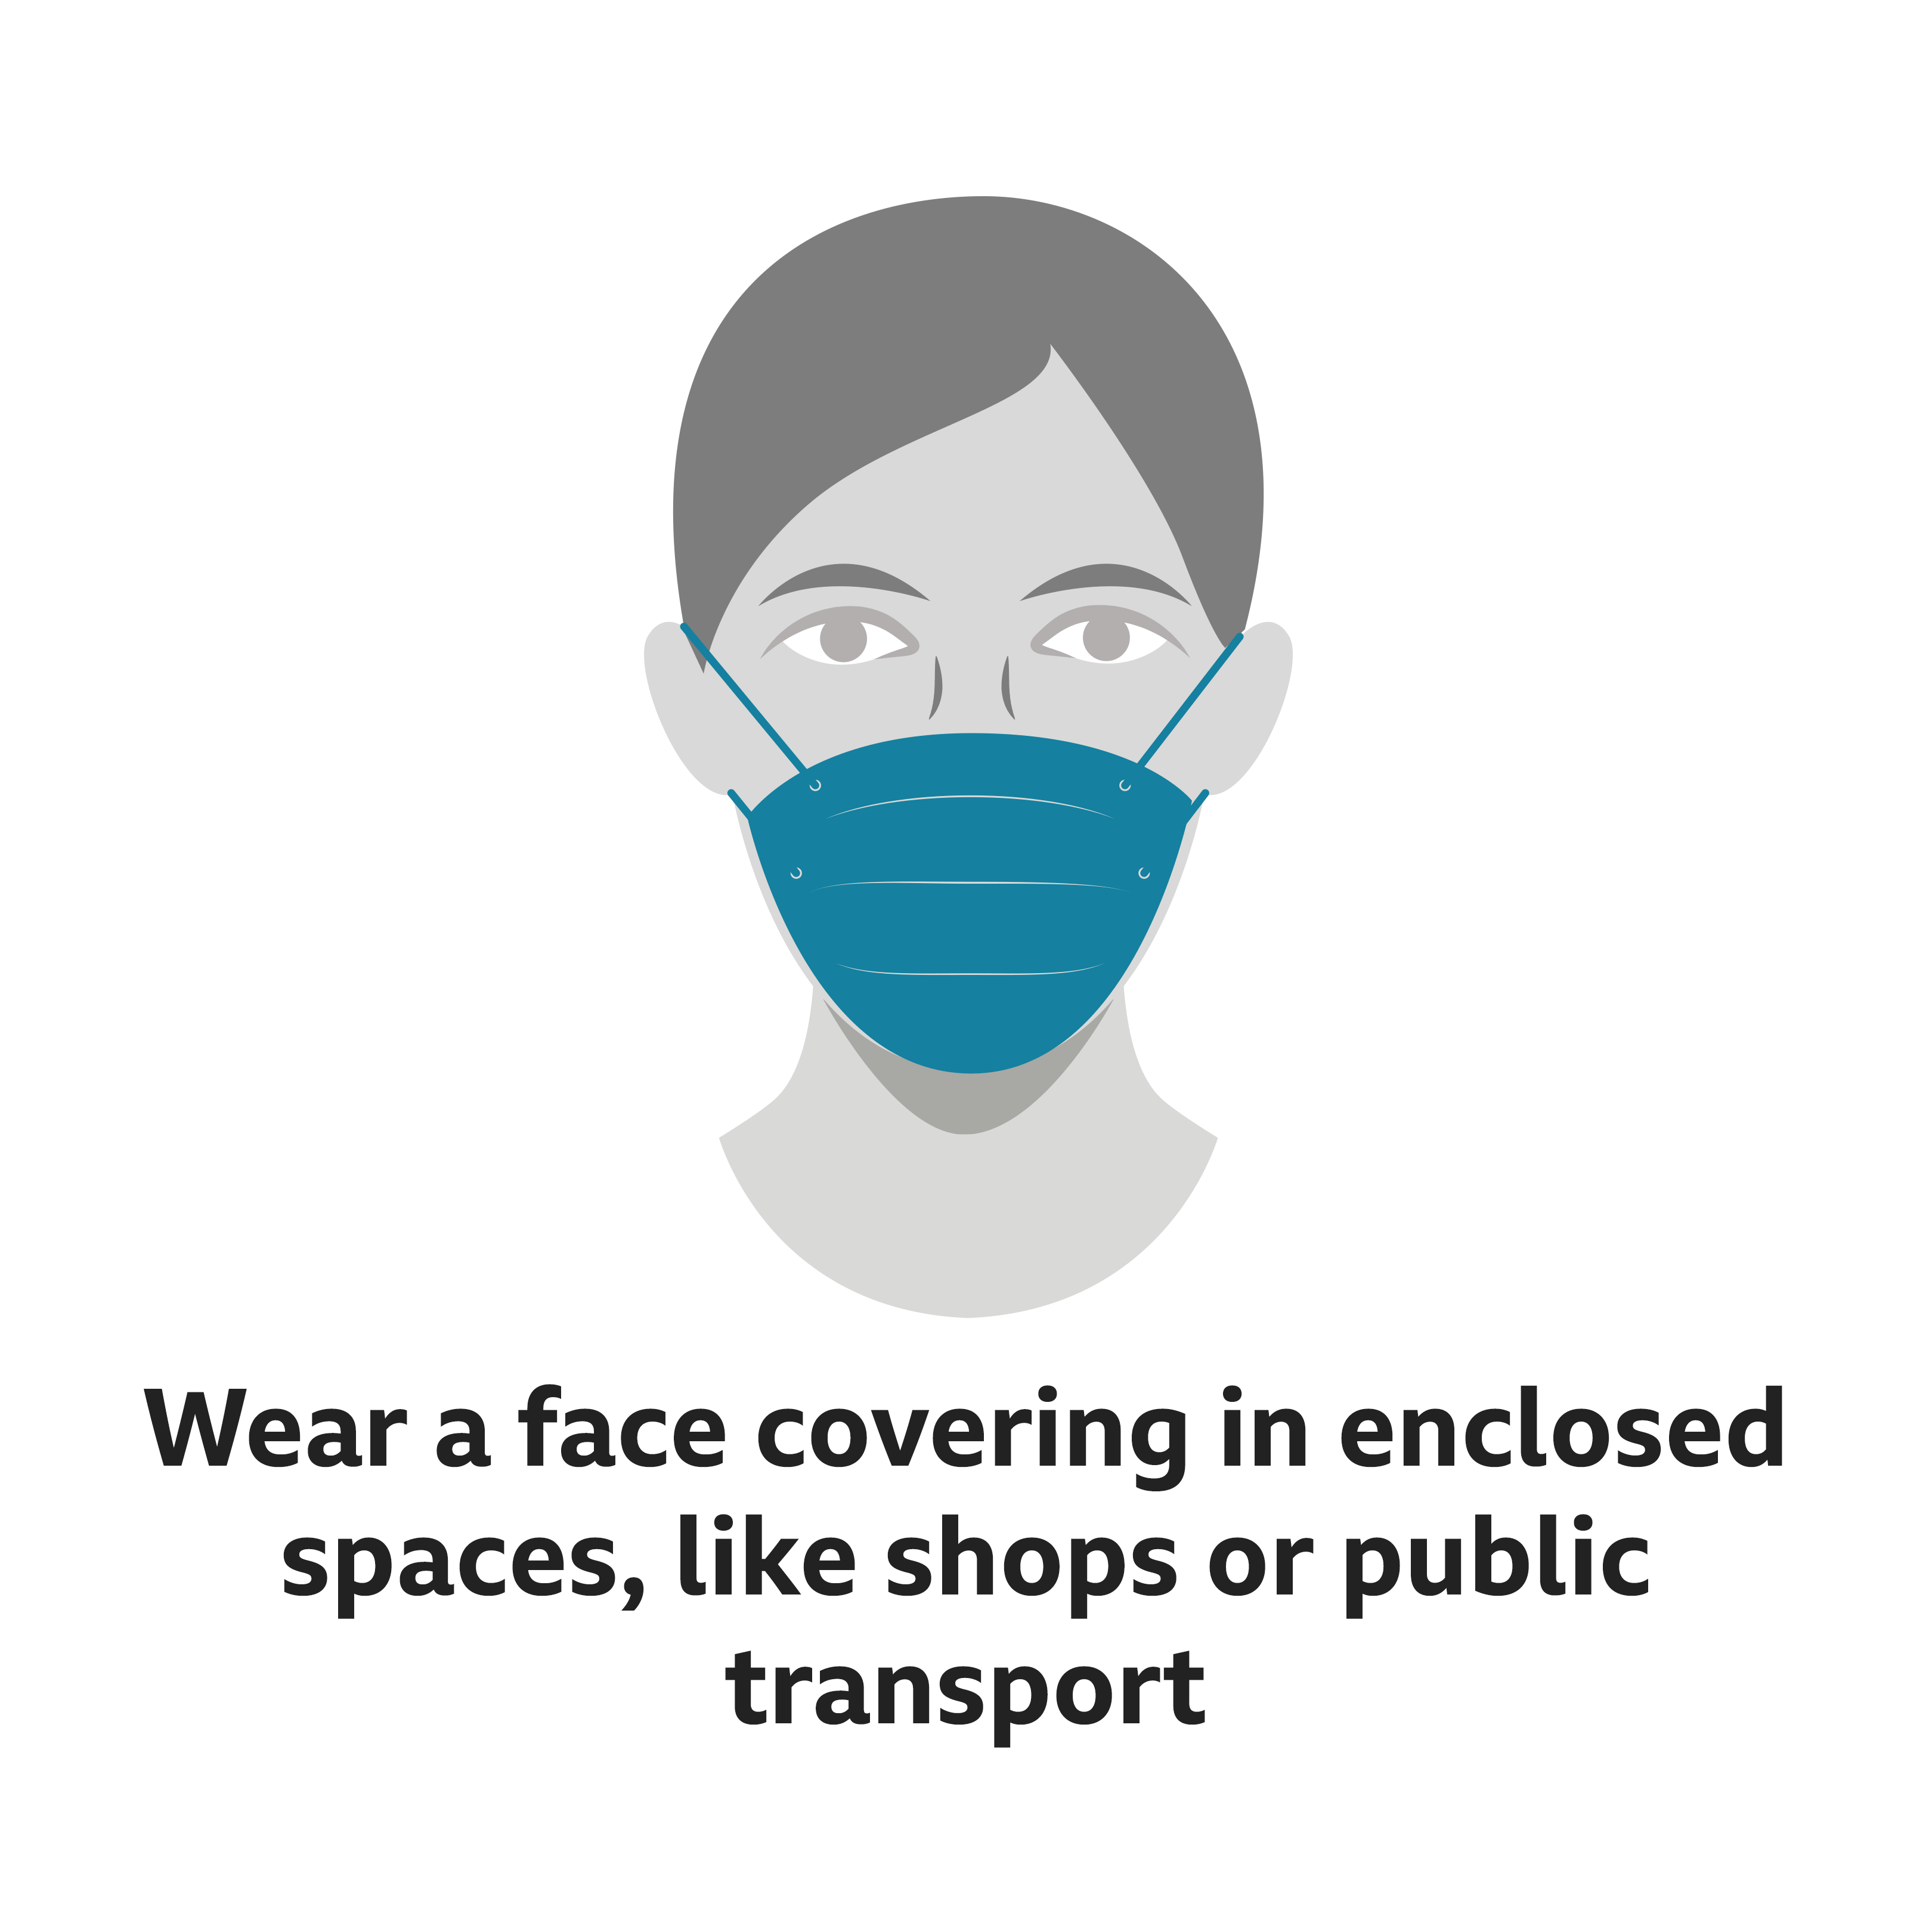 Image shows woman wearing a face covering - and says they must be worn in enclosed spaces like shops or public transport